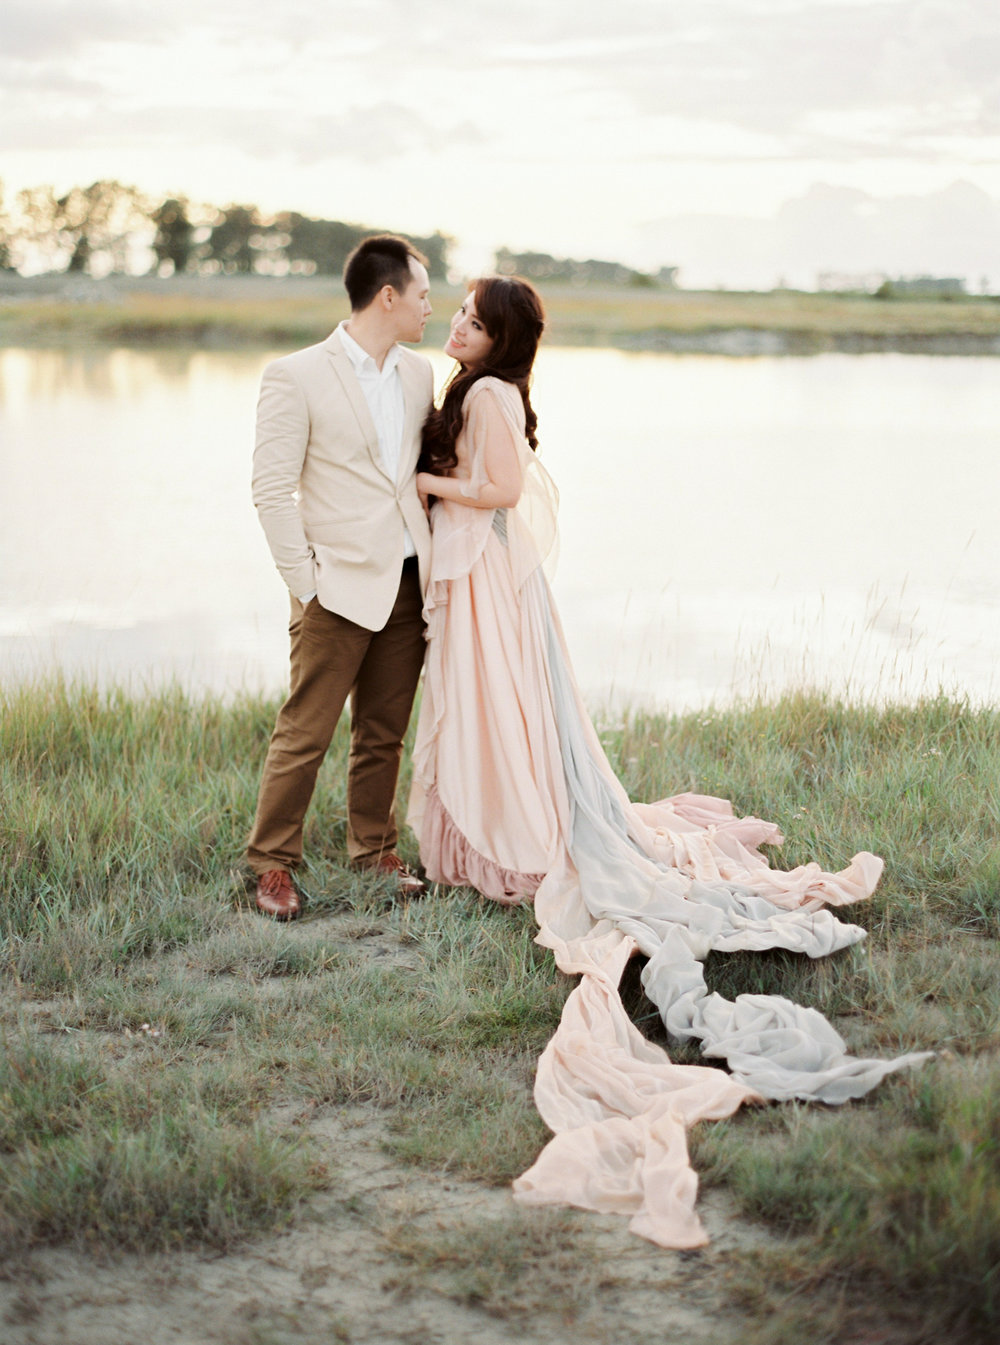 Destination engagement _ engagement in france _ mont saint-michel _ engagement photographer _ france wedding photographer _ 12.jpg